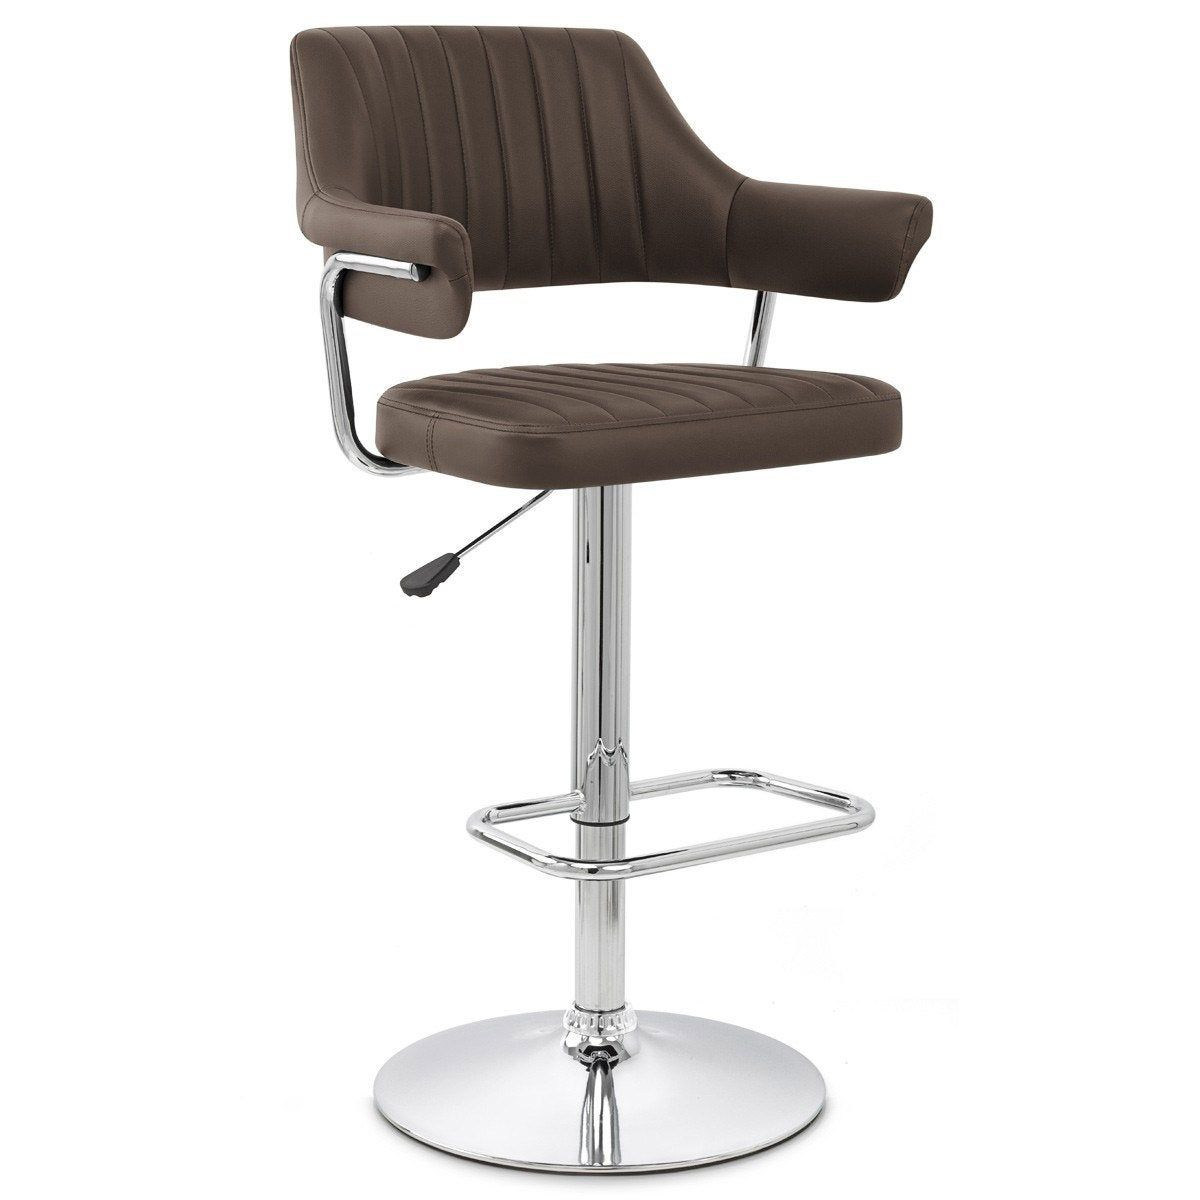 Tabouret De Bar Chic Simili Cuir Marron Skyline Mdt Tabouret De Bar Chaise Bar Bar Chic